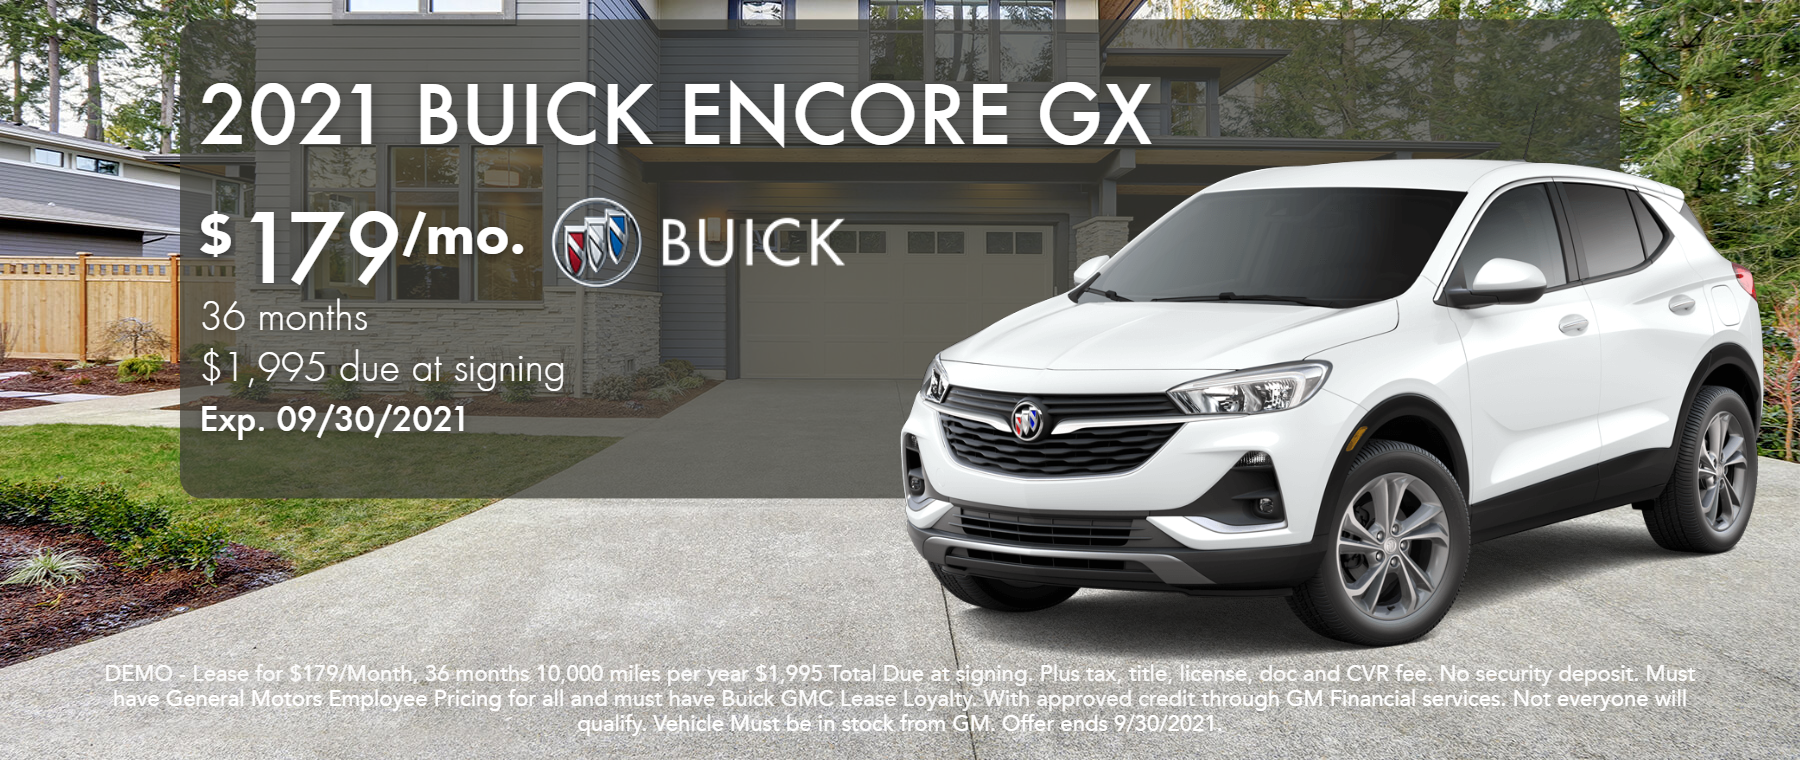 2021_Buick_Encore GX_Preferred_Thu Sep 02 2021 12_33_15 GMT-0400 (Eastern Daylight Time)